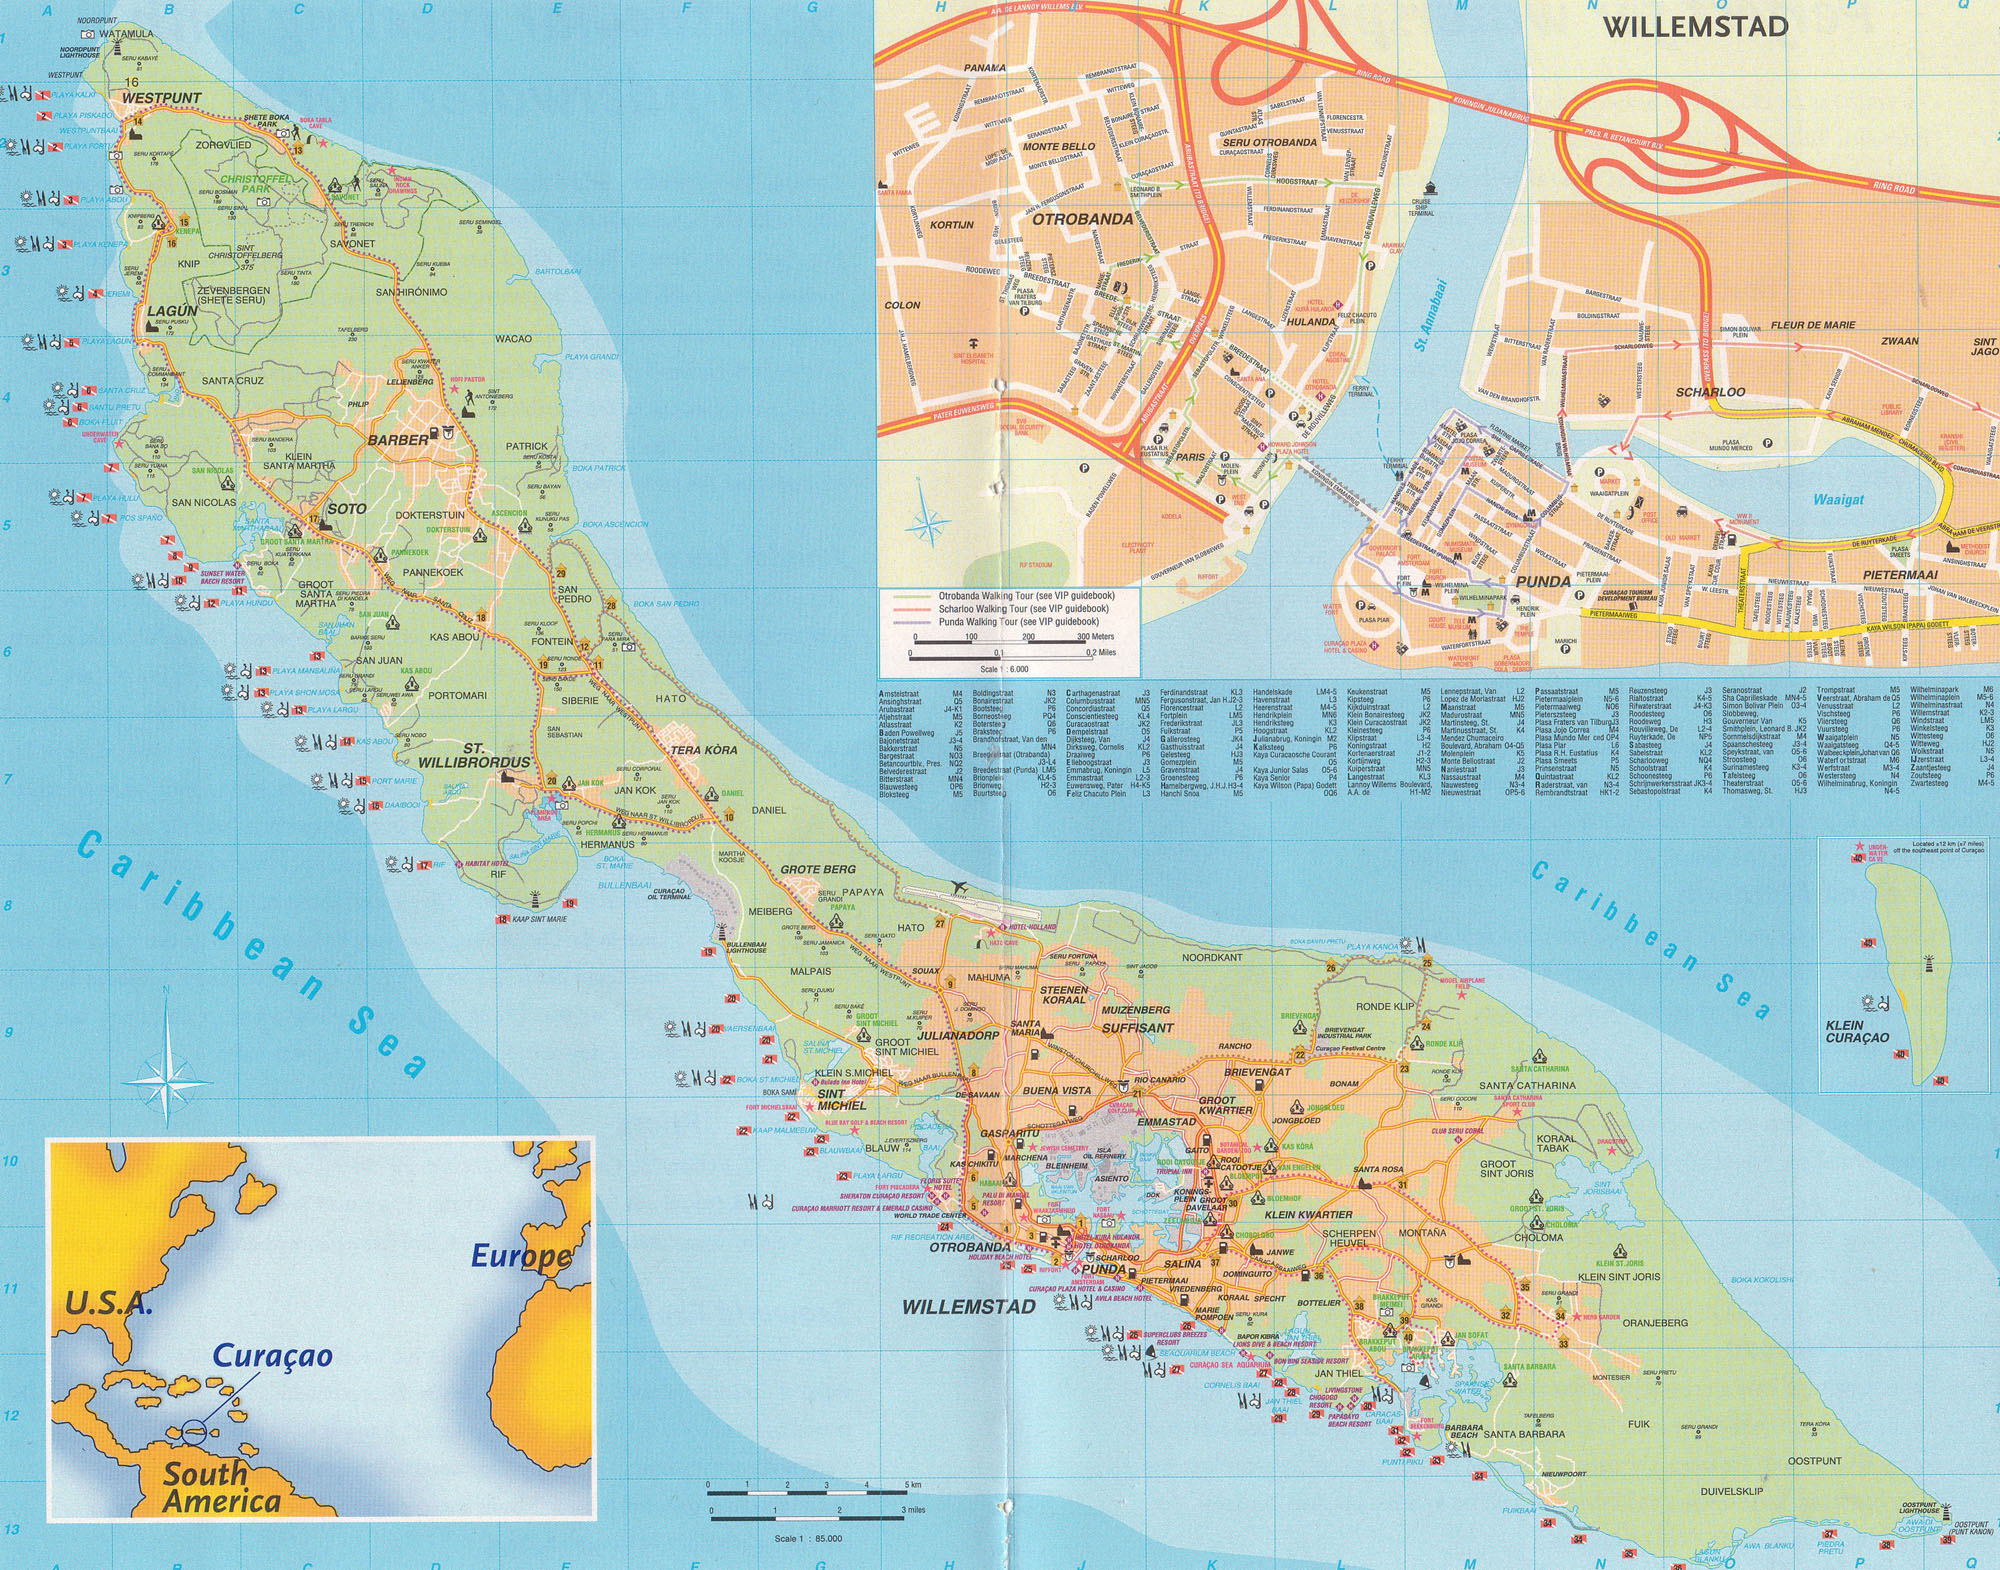 Large Detailed Road Map Of Curacao Island Netherlands Antilles - Netherlands antilles map